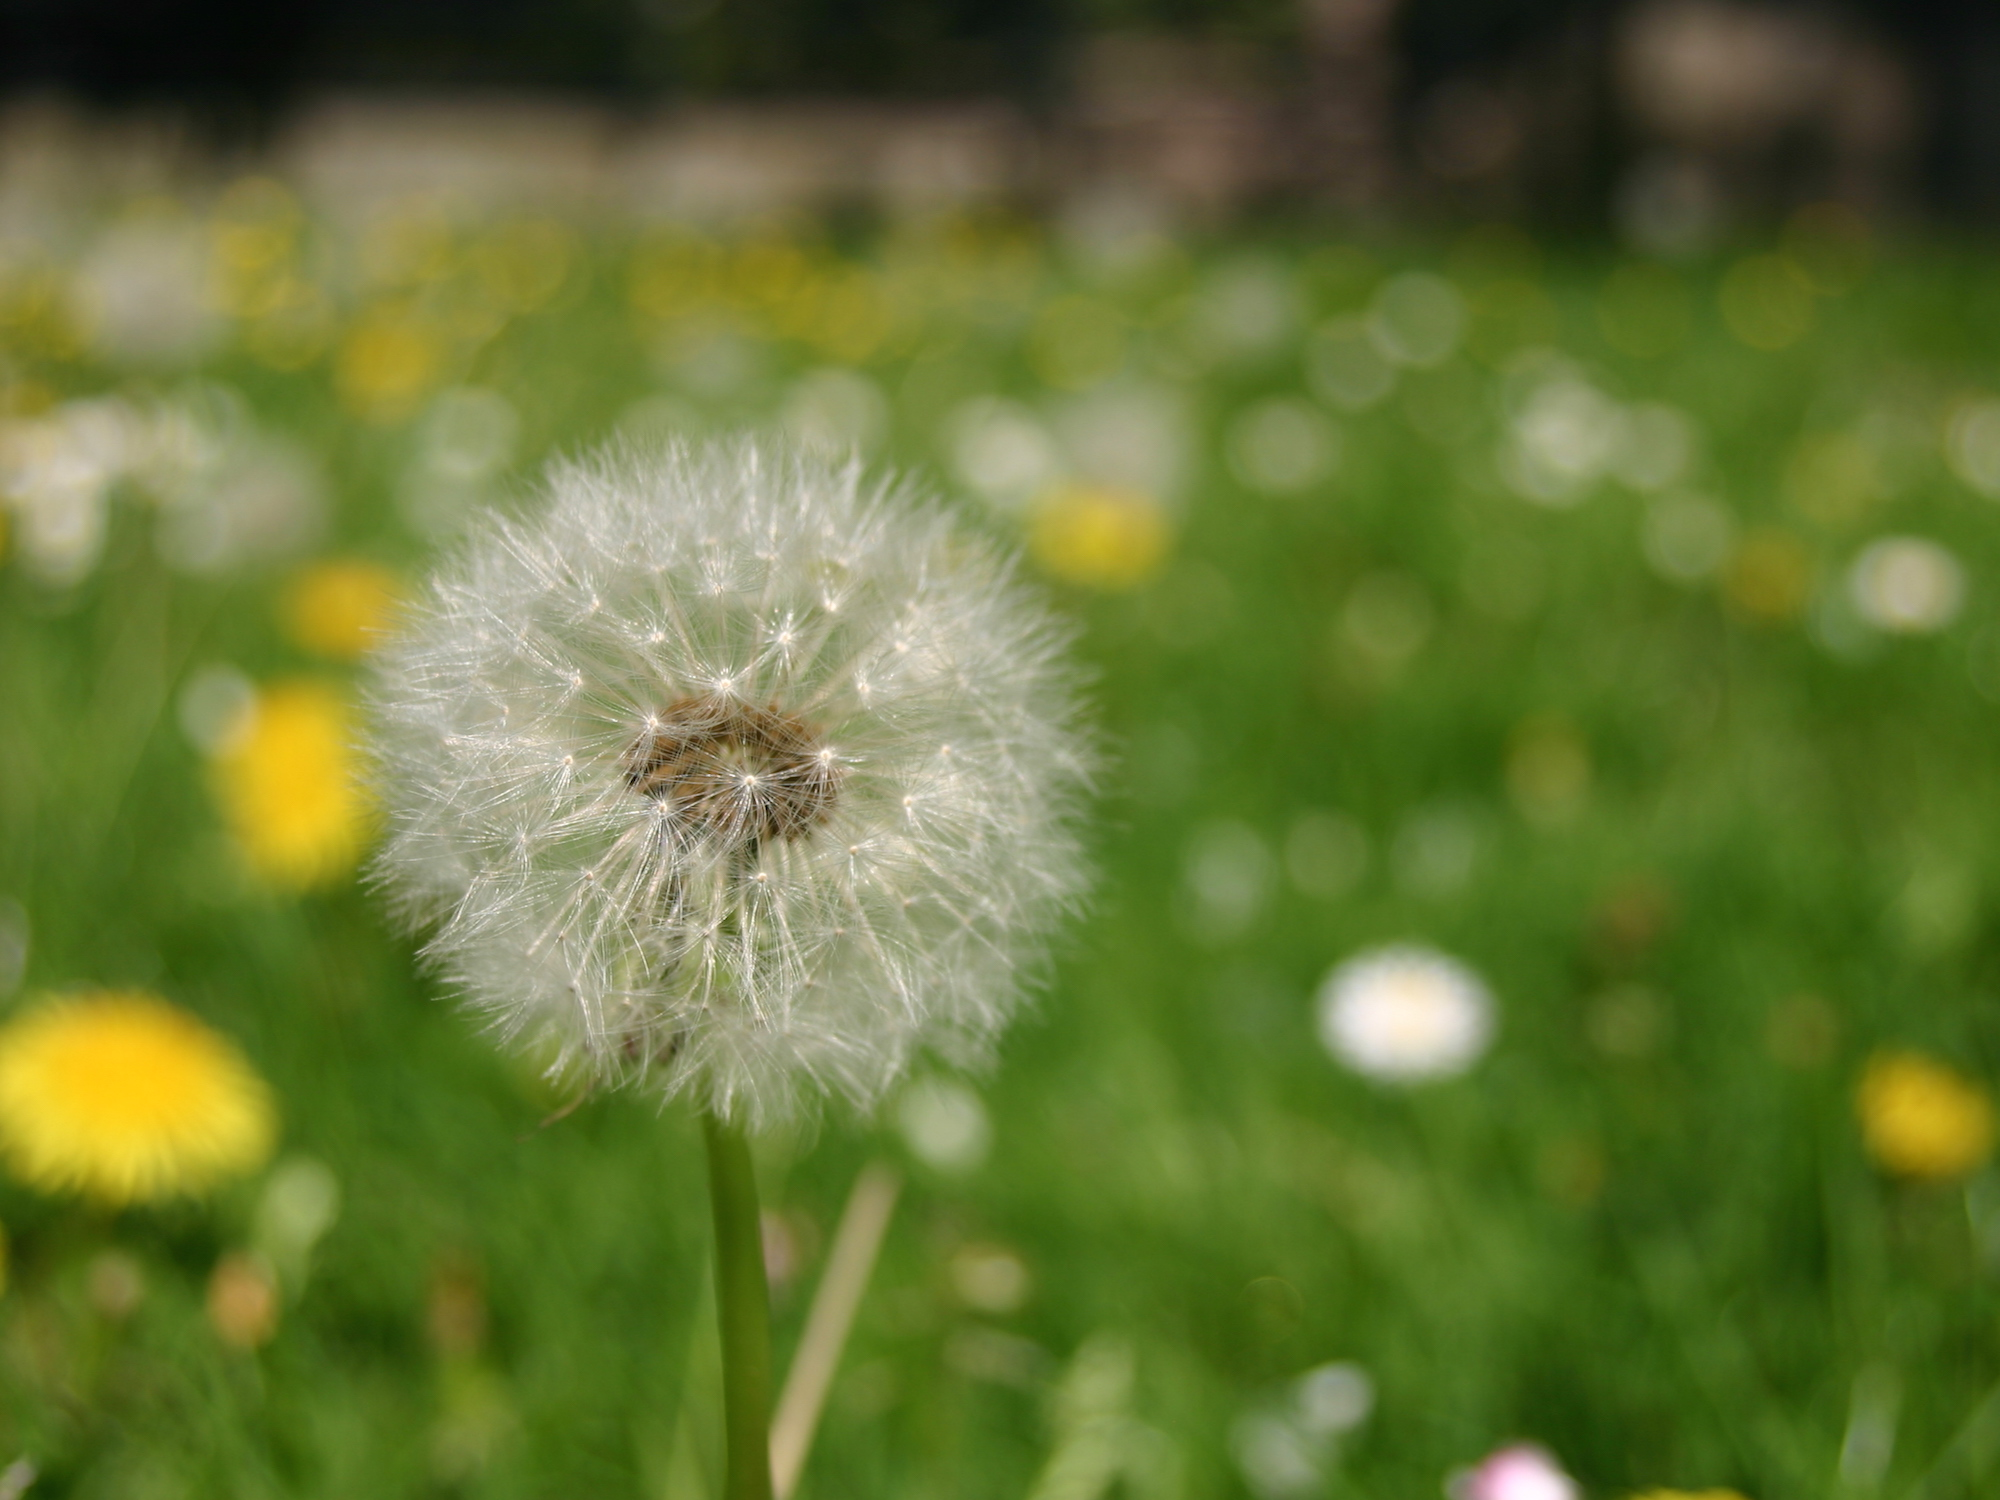 happiness is seeing a dandelion as a flower, not a weed